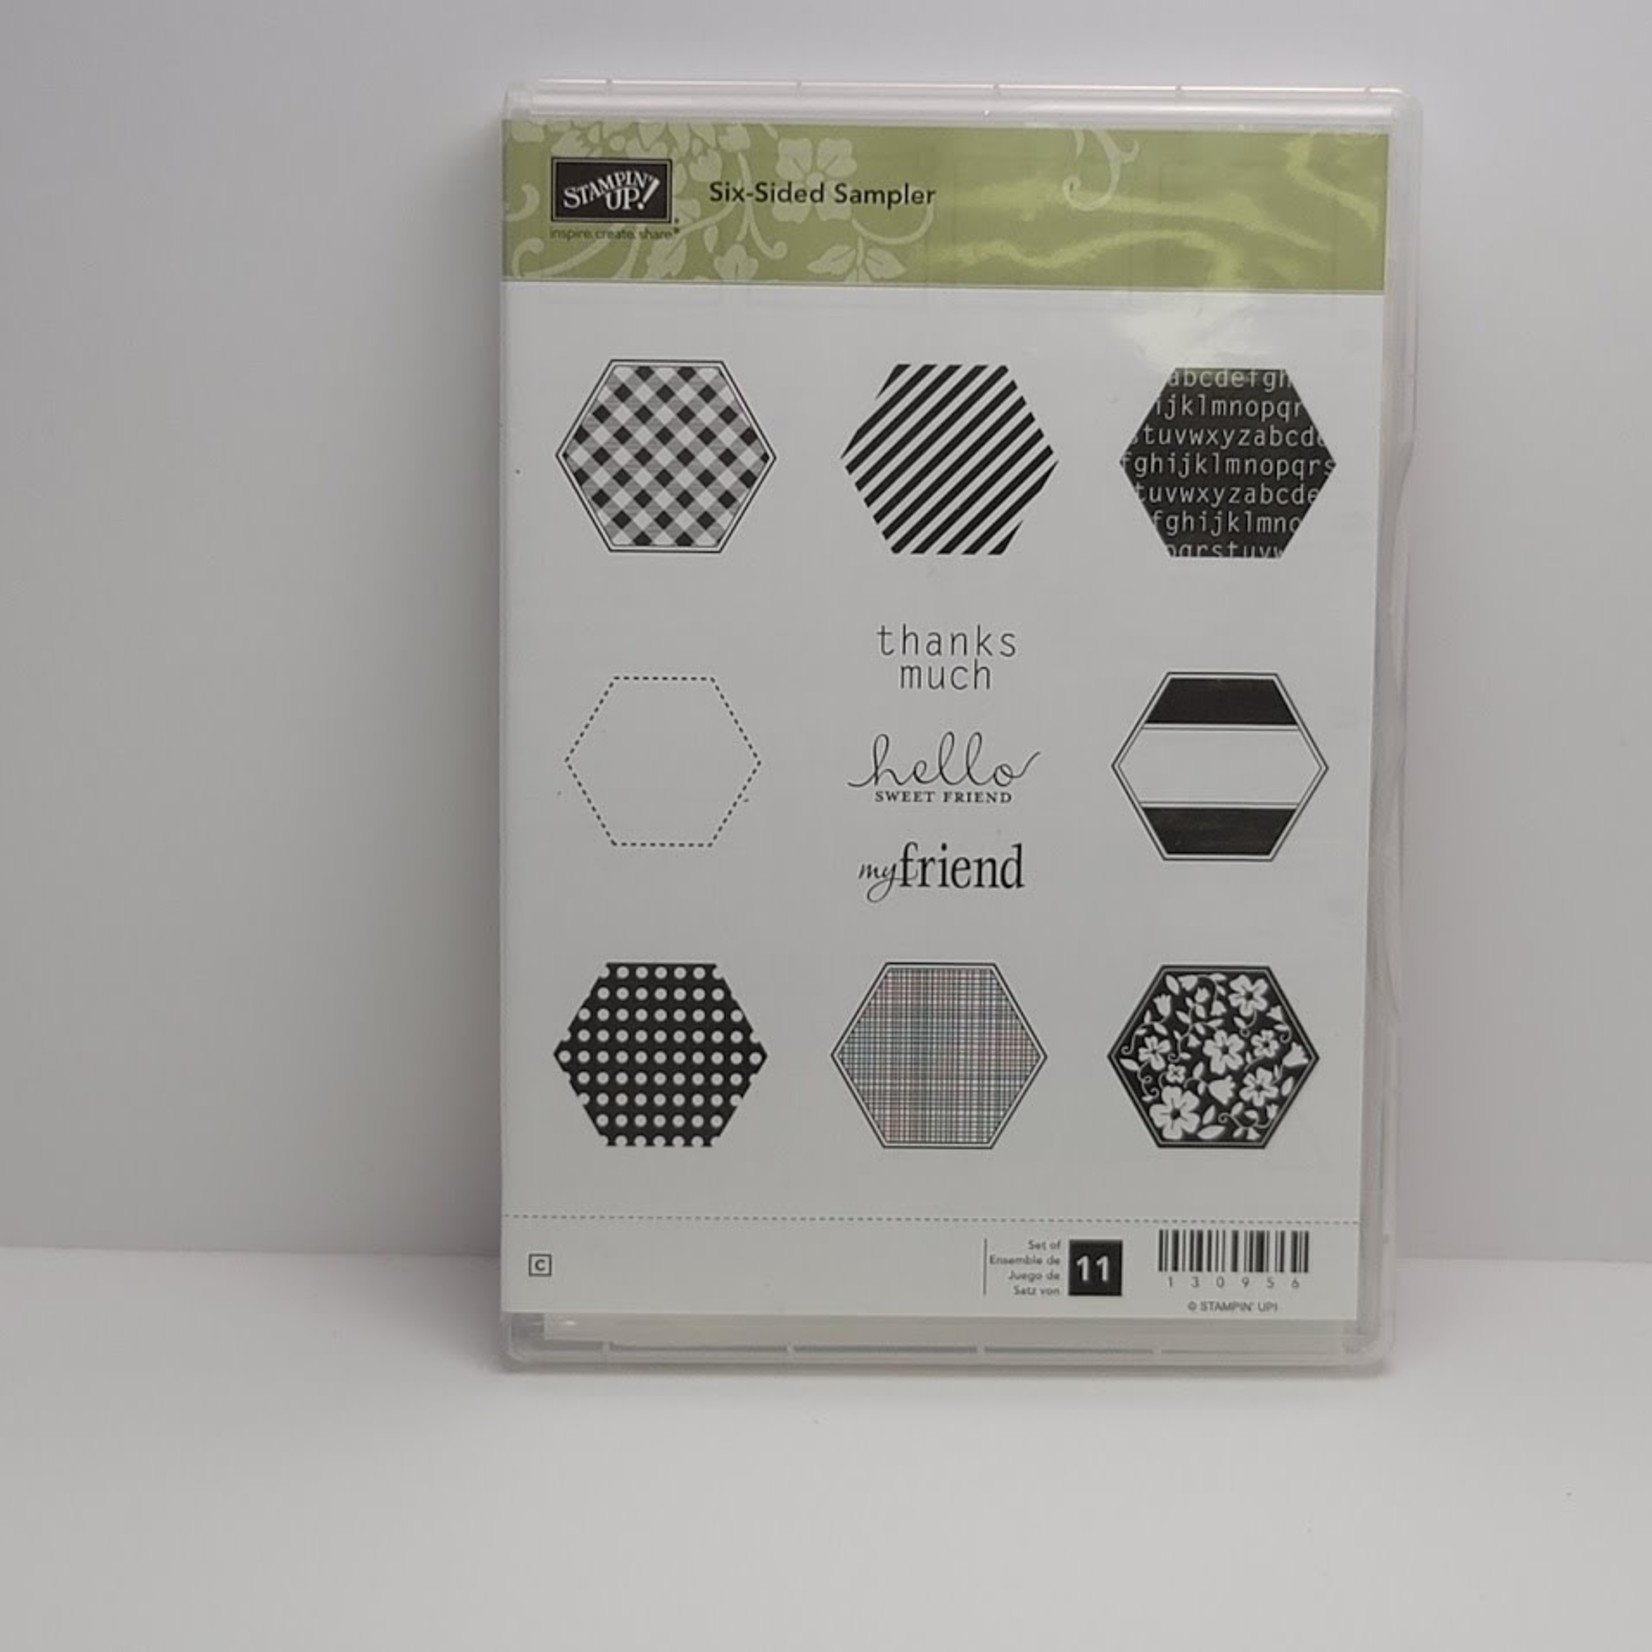 Stampin' Up Stampin' up - Cling Stamps - Six-Sided Sampler